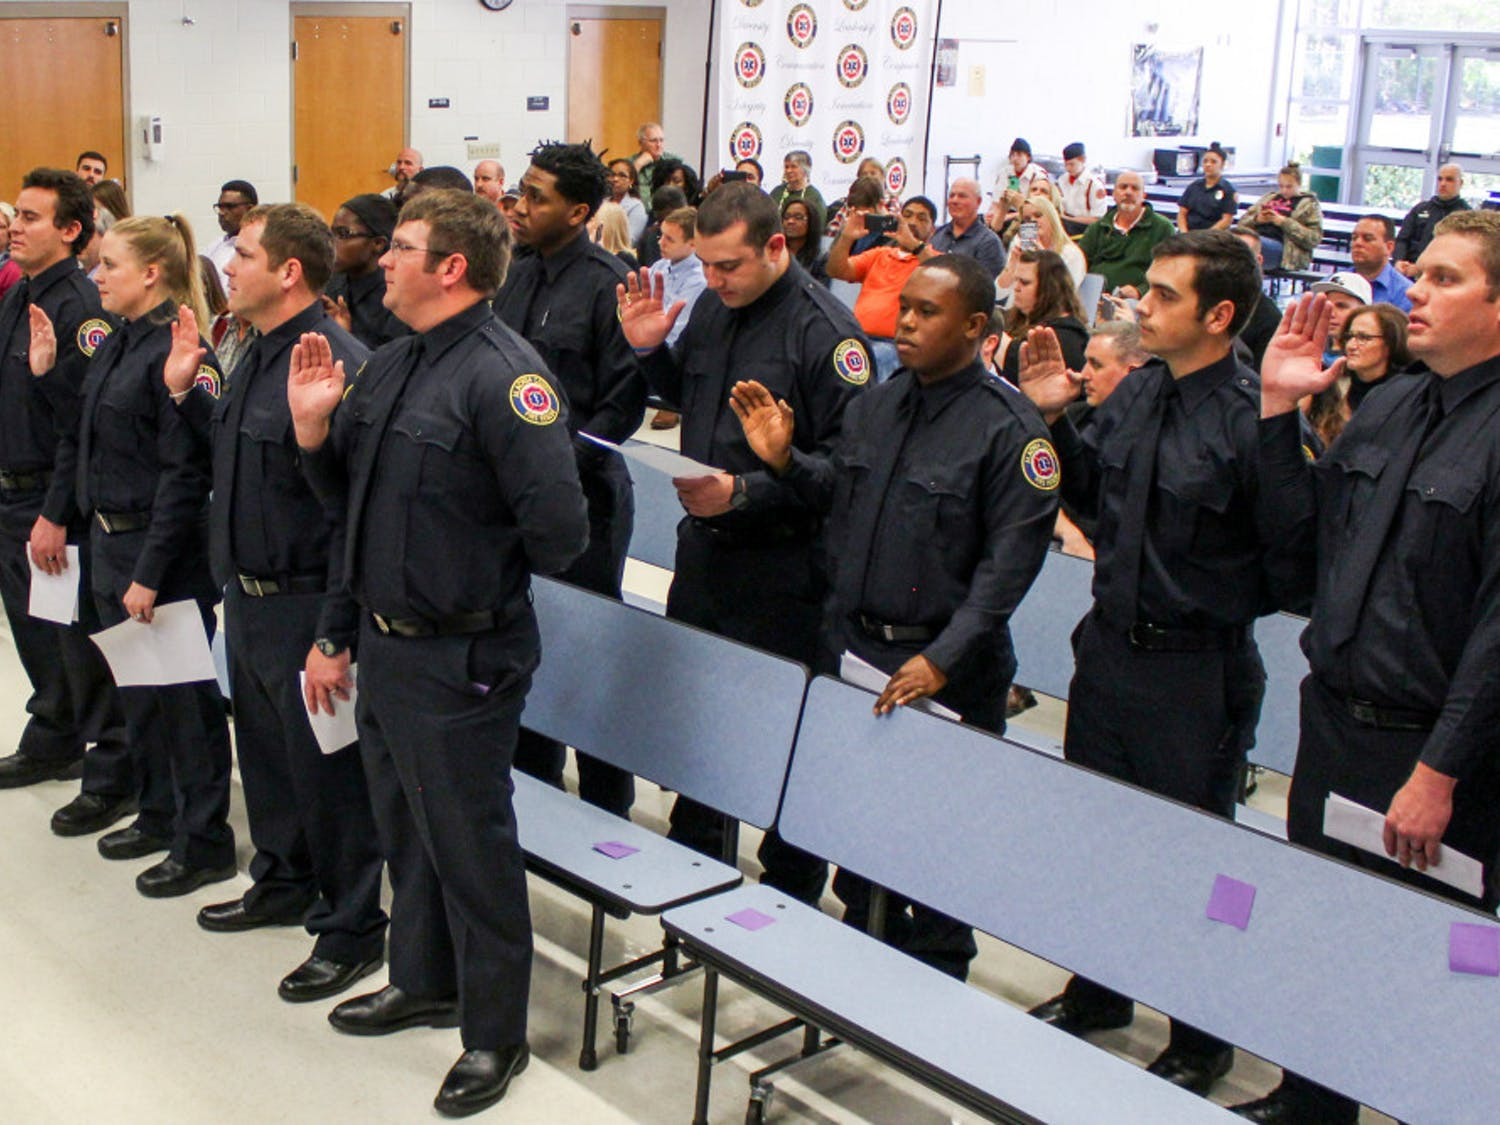 The new recruits of the Alachua County Fire Rescue swear their oath of service during the pinning ceremony on Thursday afternoon. The ceremony also celebrated the first African-American female firefighter in the county, Alex Rolle-Polk.